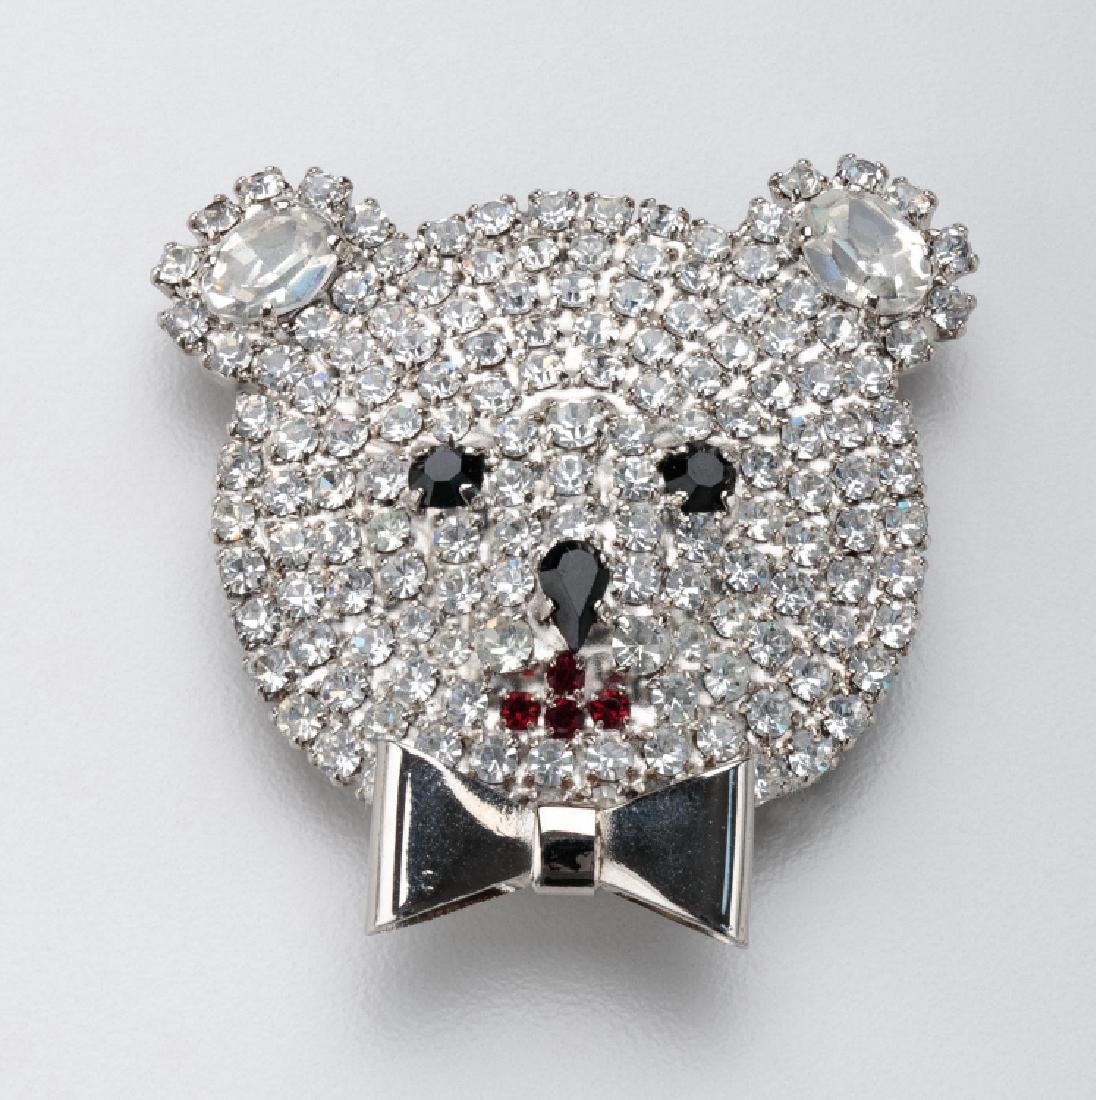 BUTLER & WILSON BEAR WITH BOWTIE BROOCH